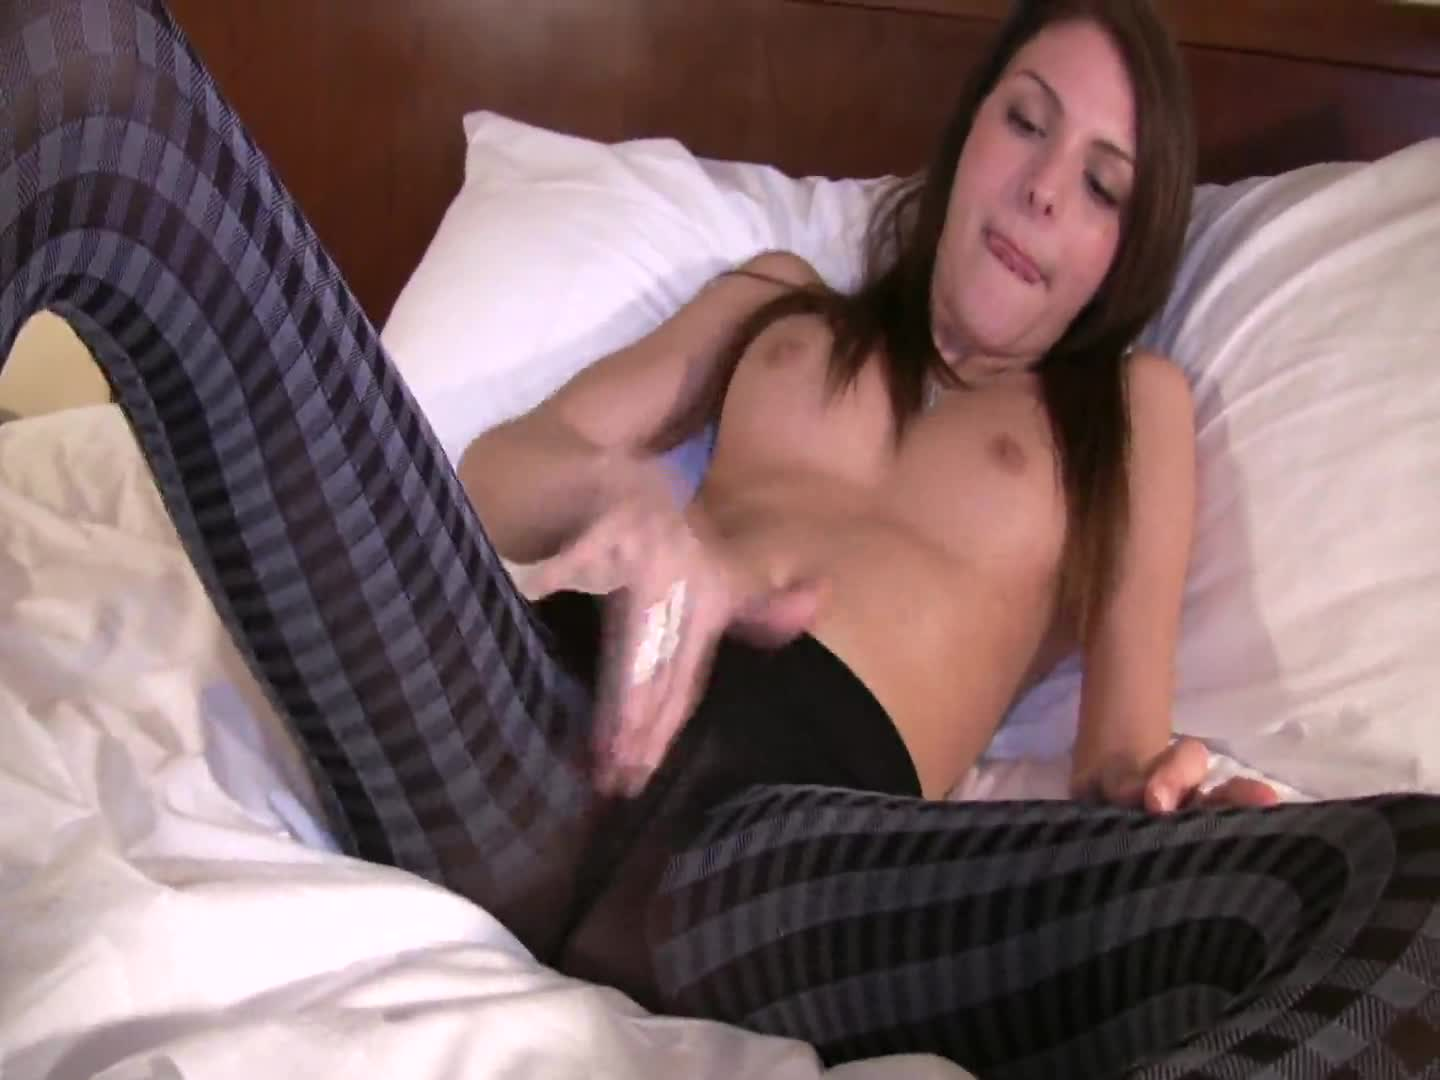 The Hot porn girls rubbing